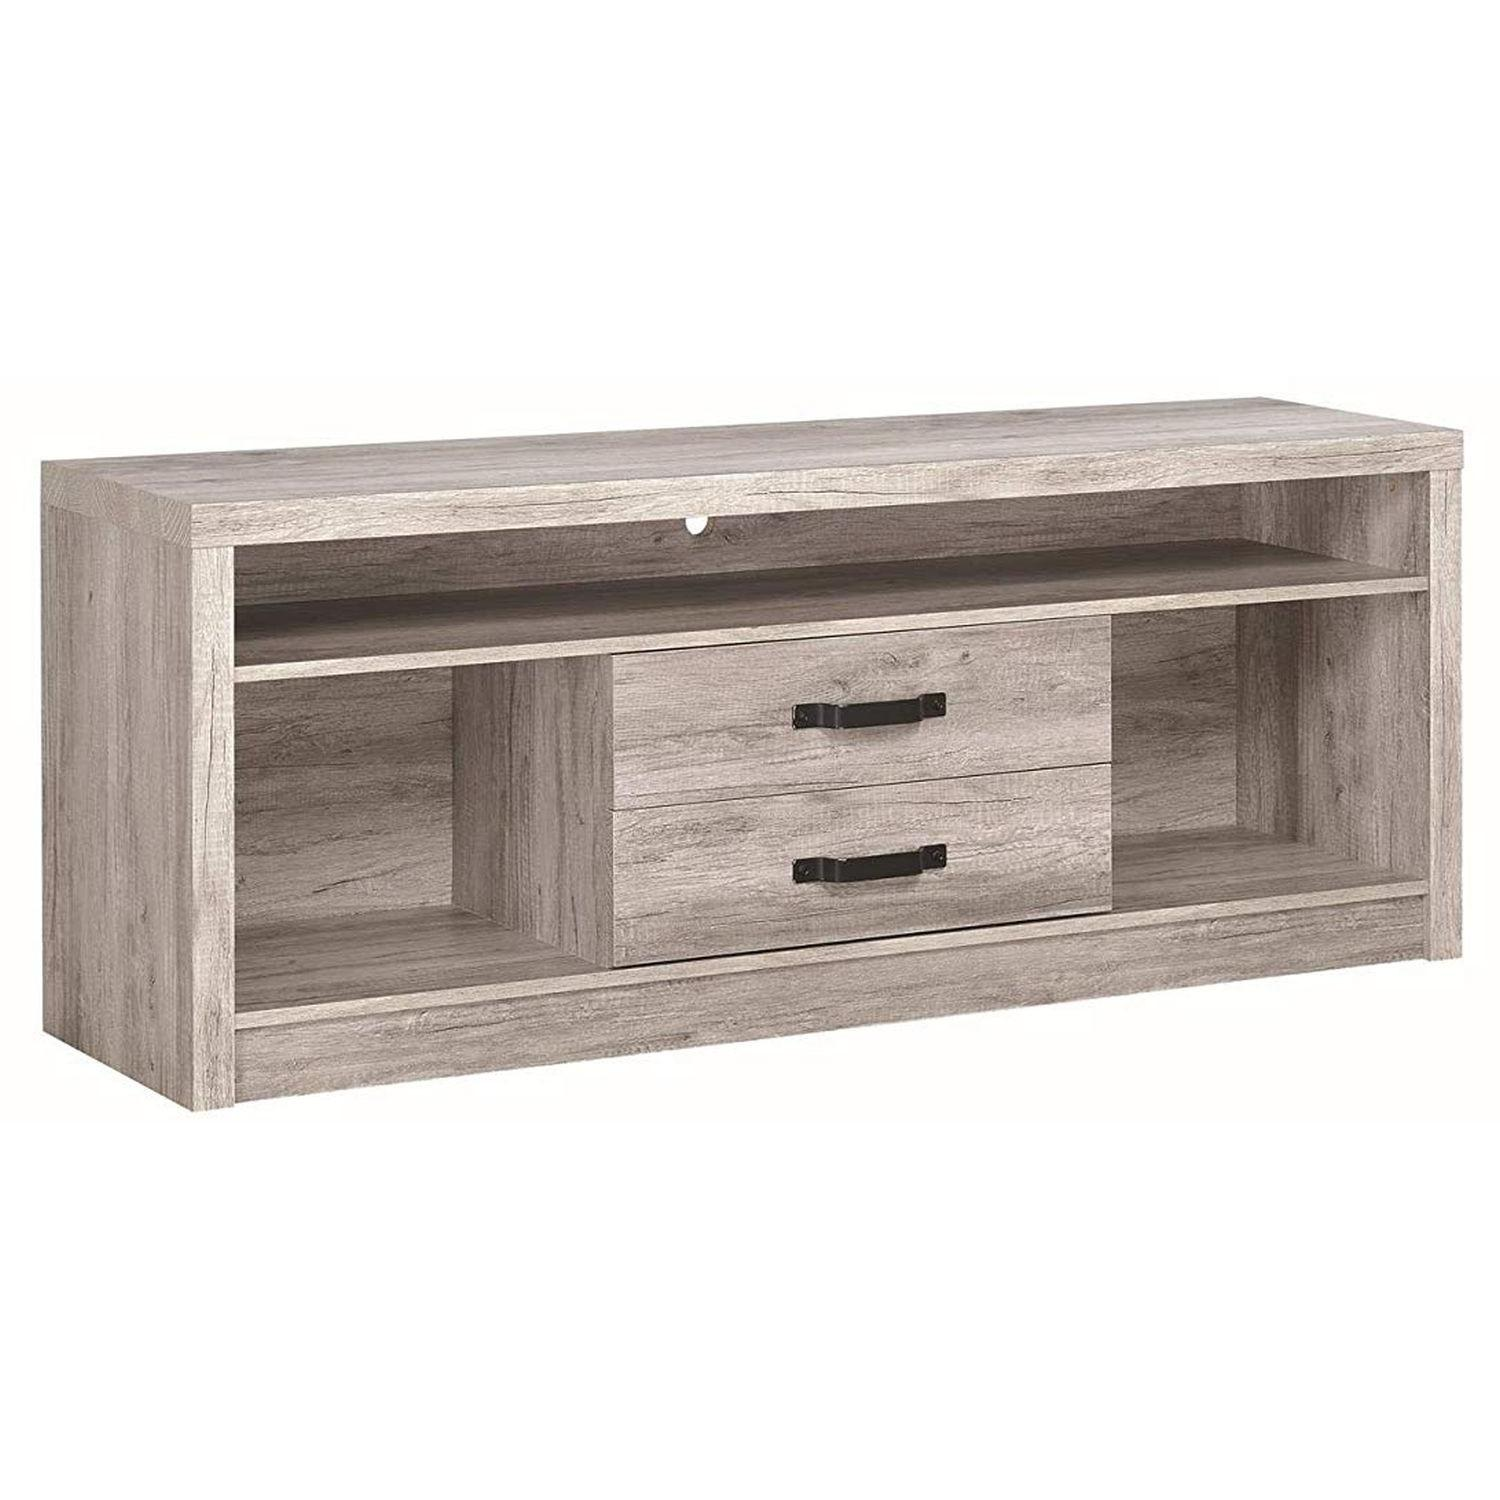 TV Stand In Rustic Oak Finish w/ 2 Cabinets & 2 Drawers - image-23